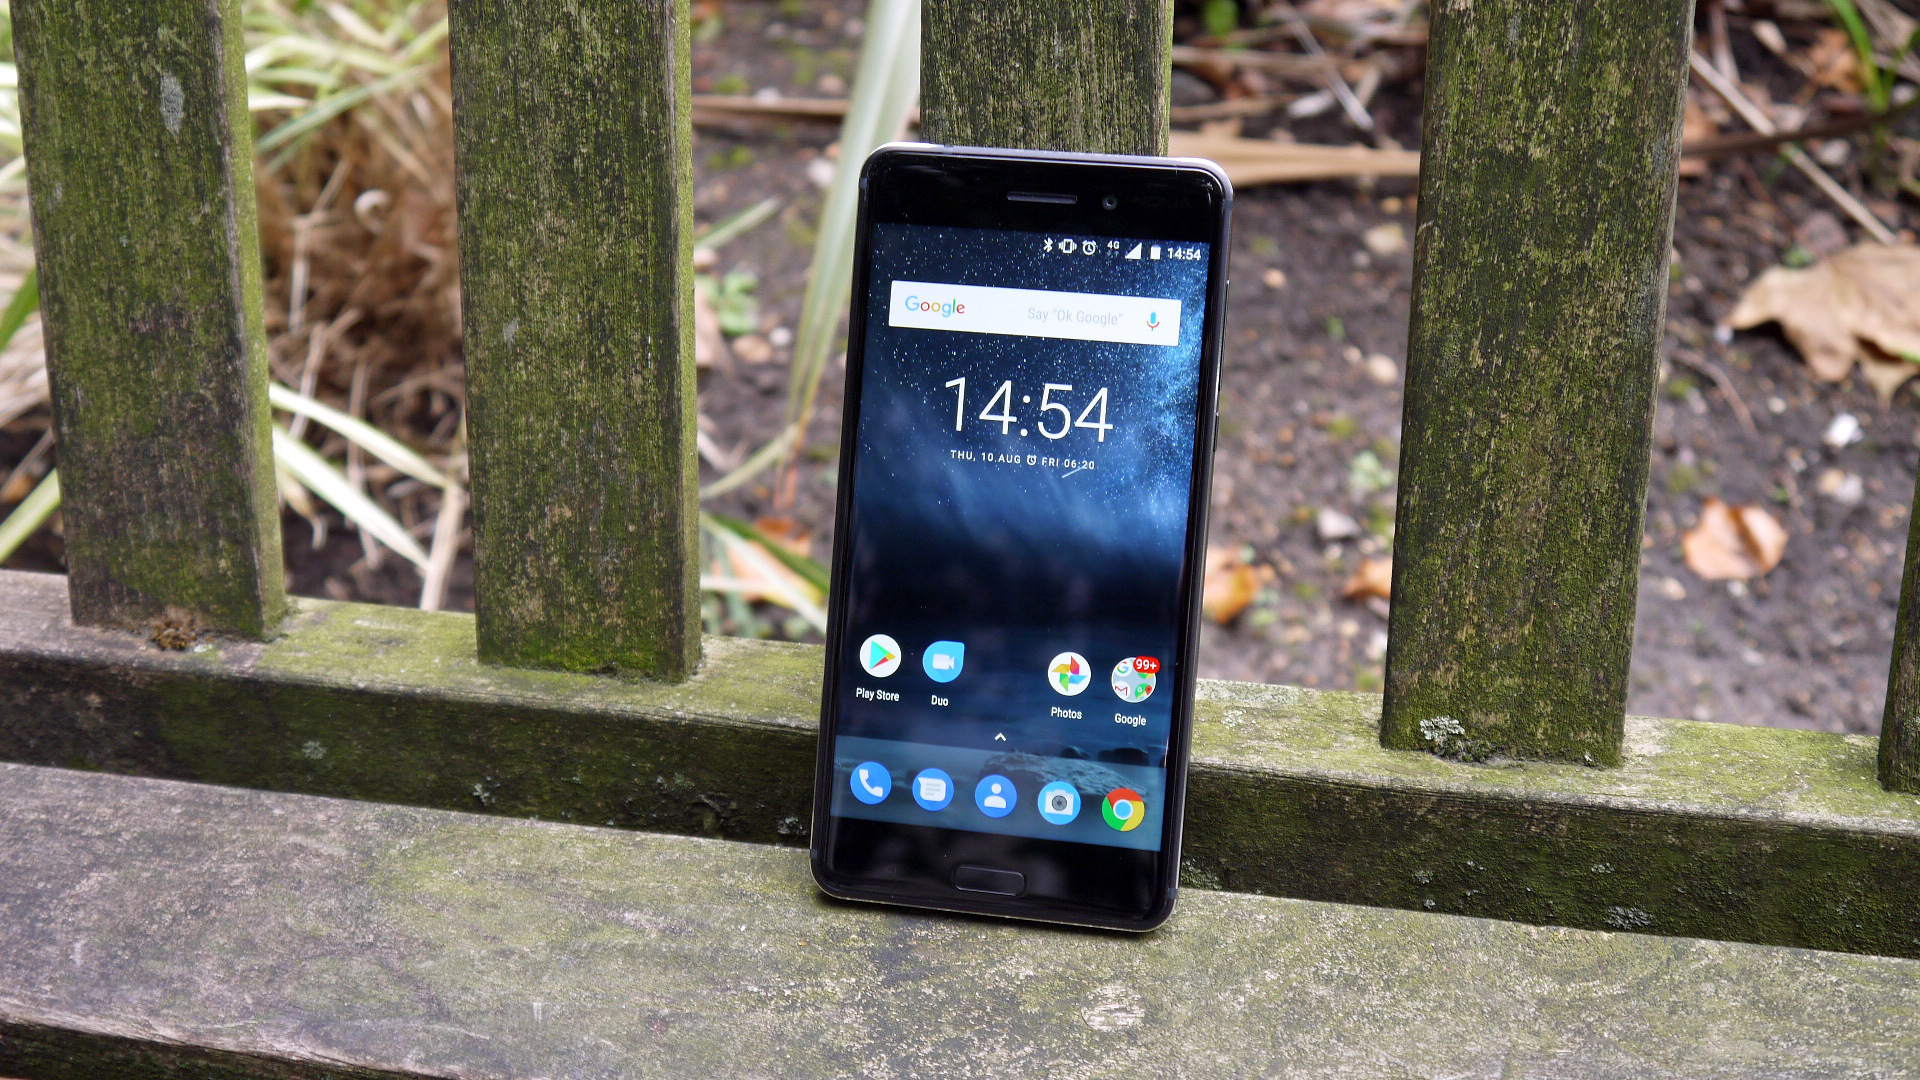 Nokia 6 Arte Black Video Nokia 6 2017 Review Techradar